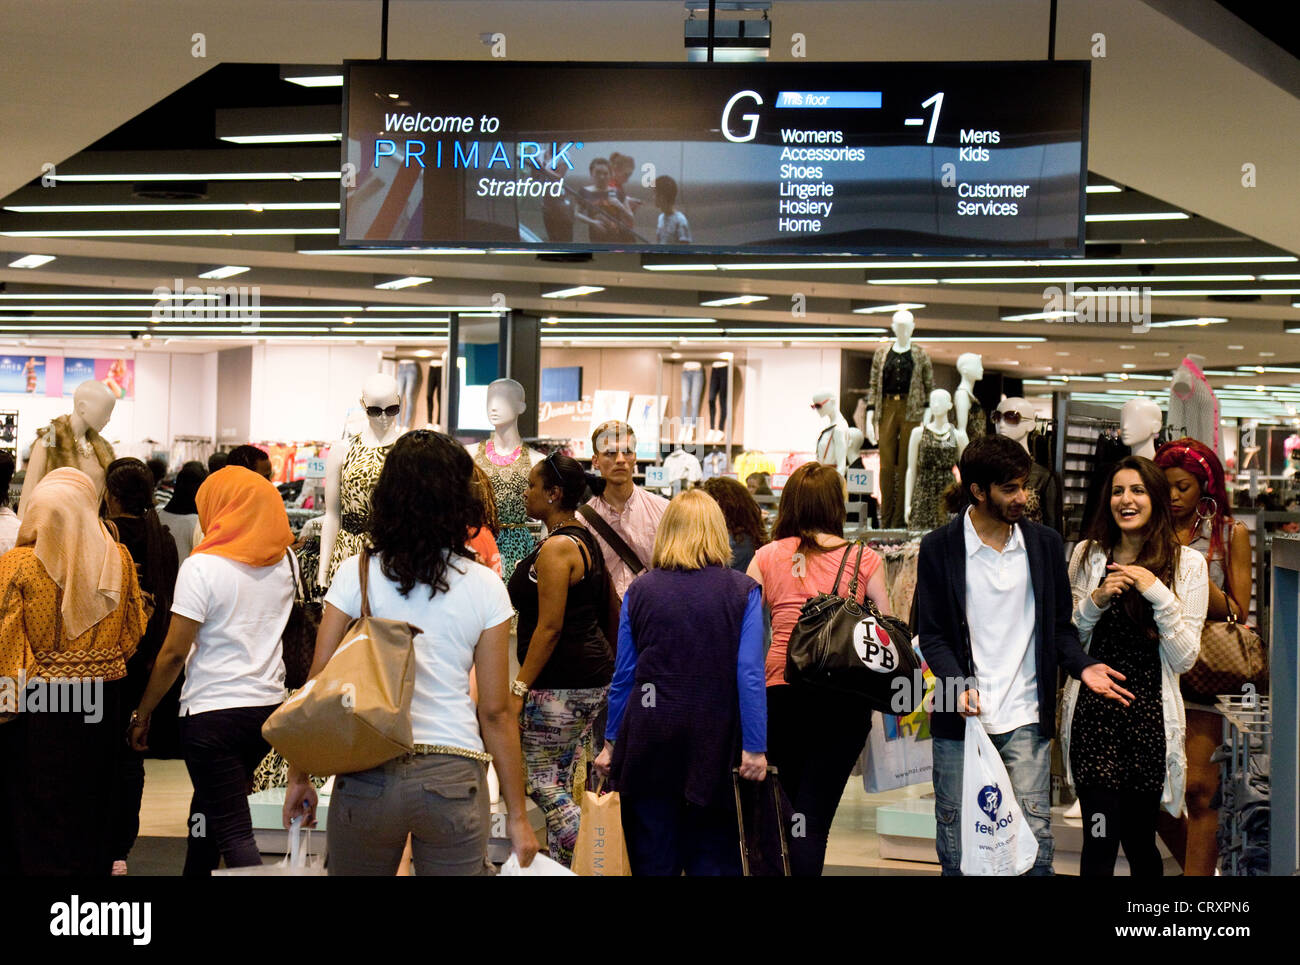 Shoppers outside the Primark store, westfield shopping centre mall, Stratford London UK - Stock Image